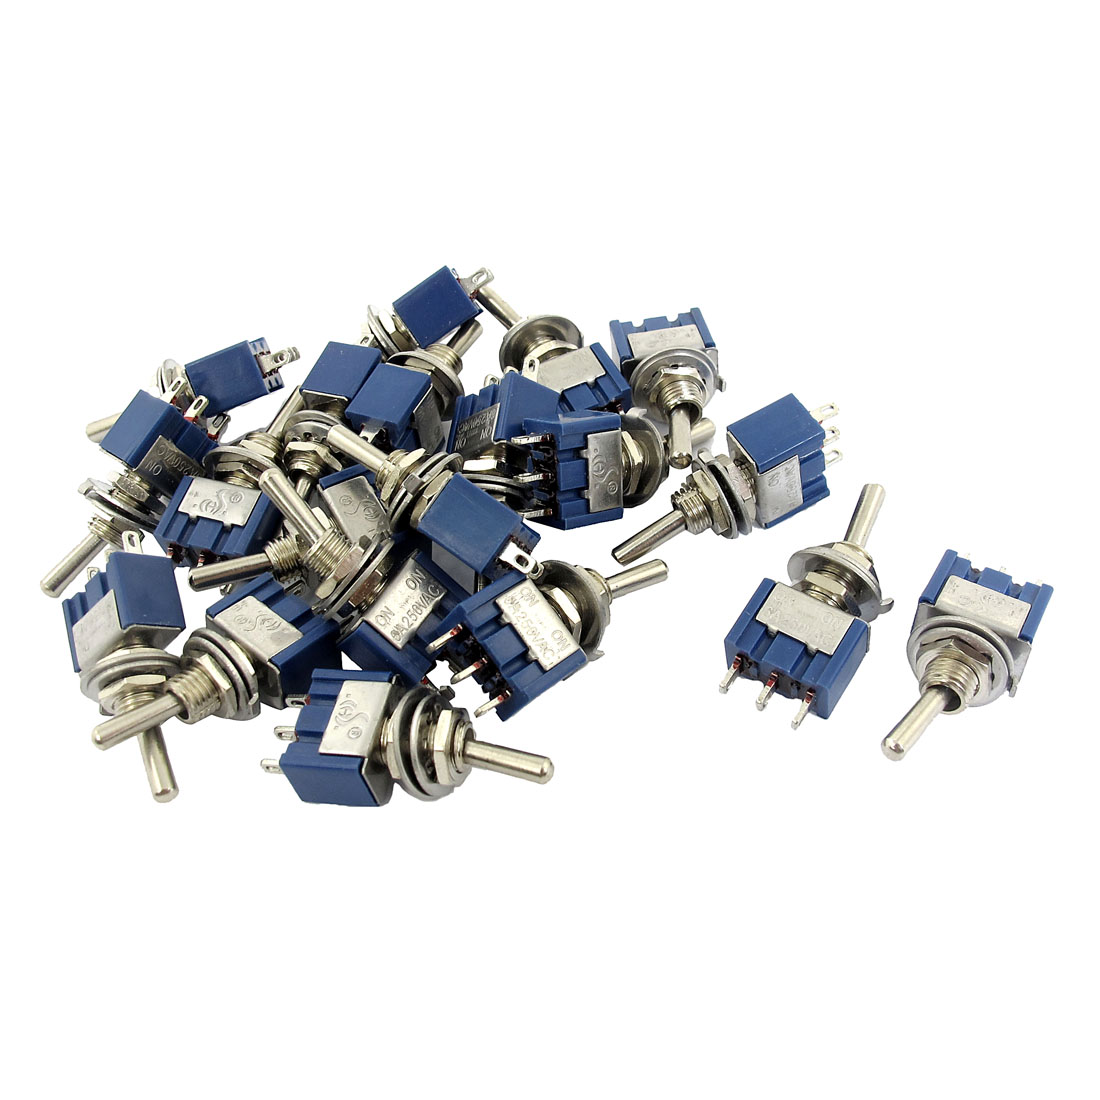 AC 250V 6A SPDT 3P ON-OFF 2 Position Locking Panel Mounting Rocker Controller Toggle Switch 20pcs Blue